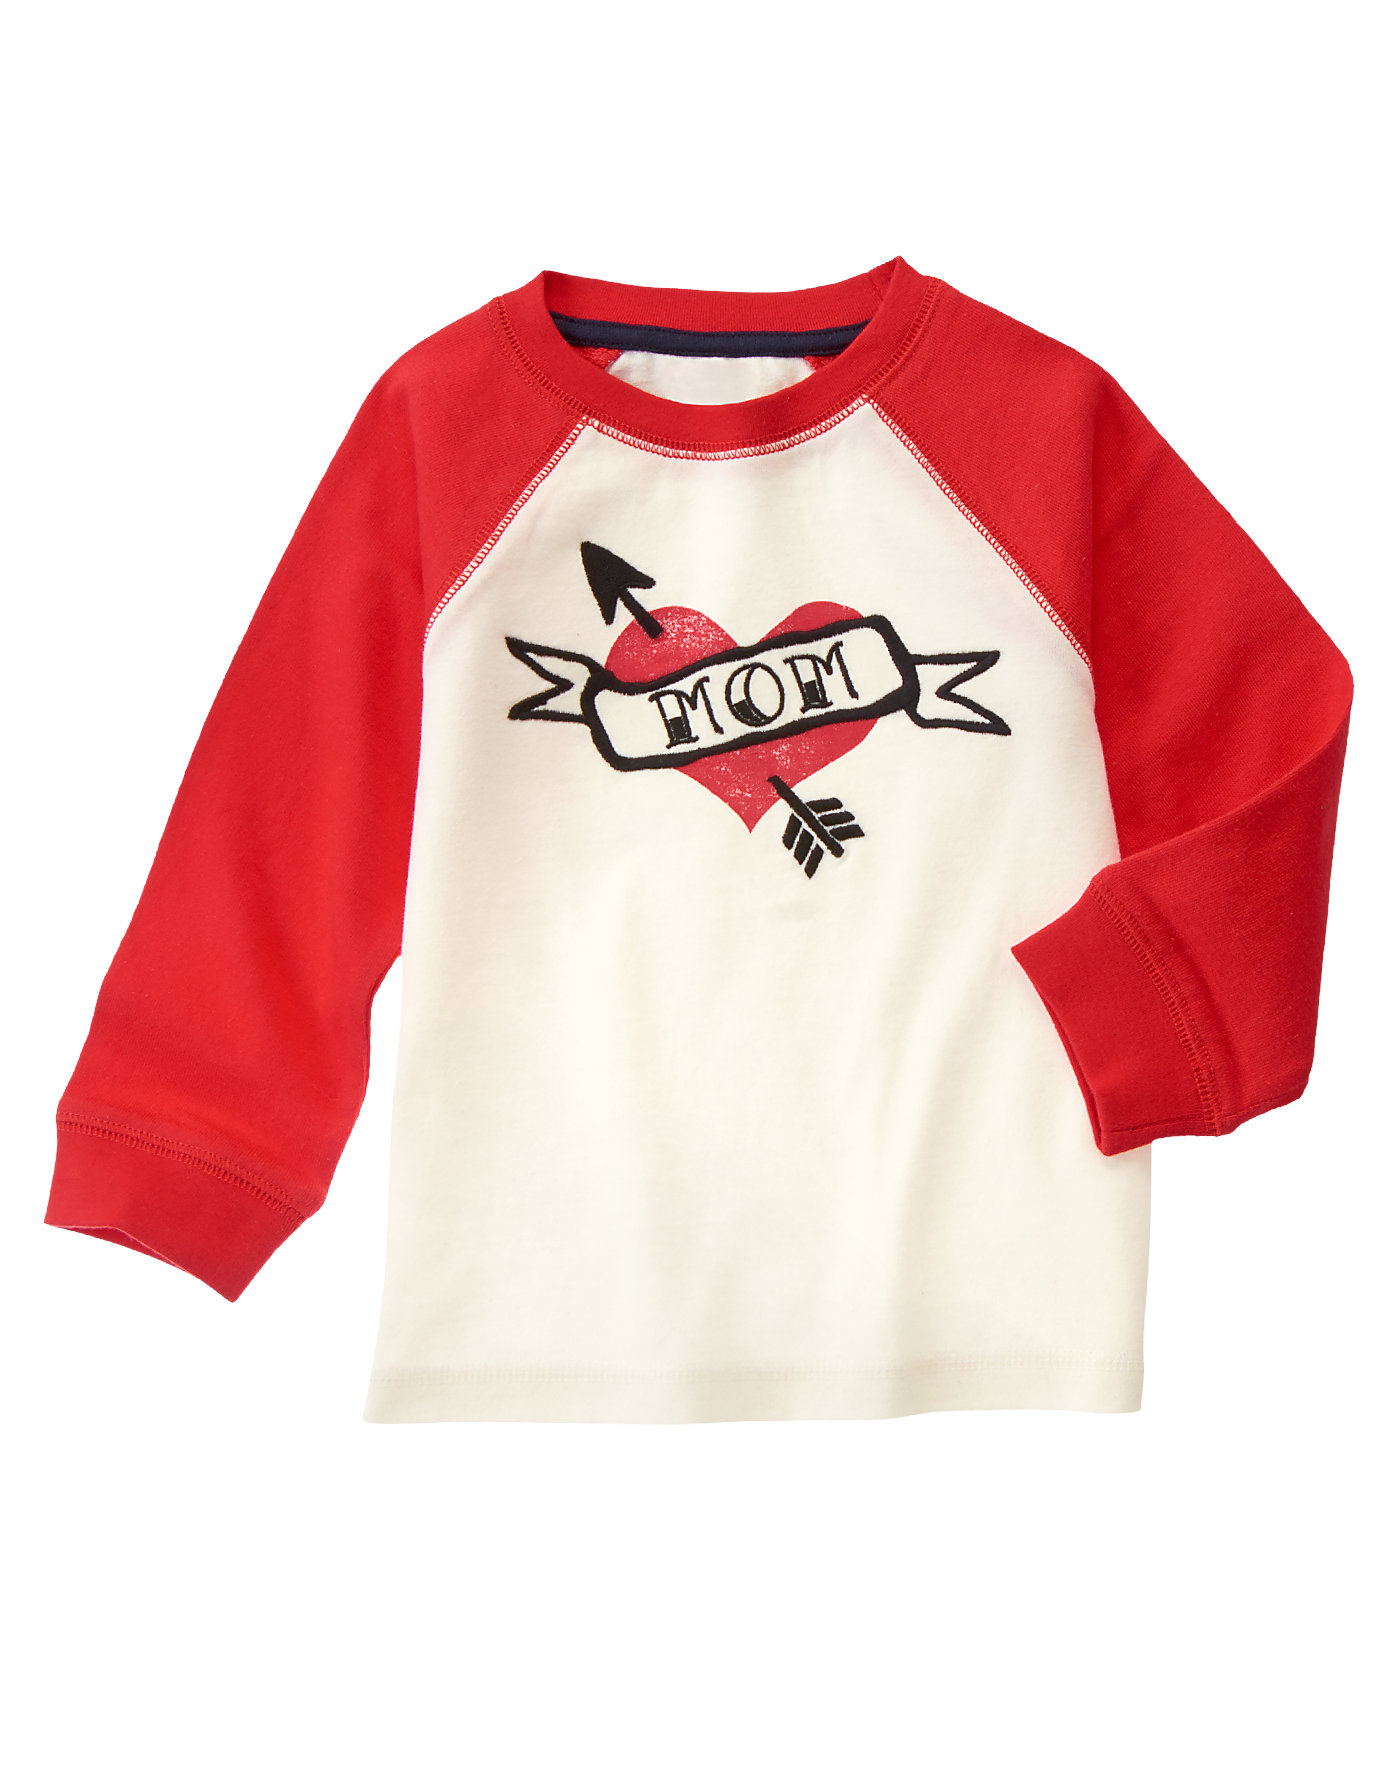 Valentines Day Outfits For Baby Boys Divine Lifestyle